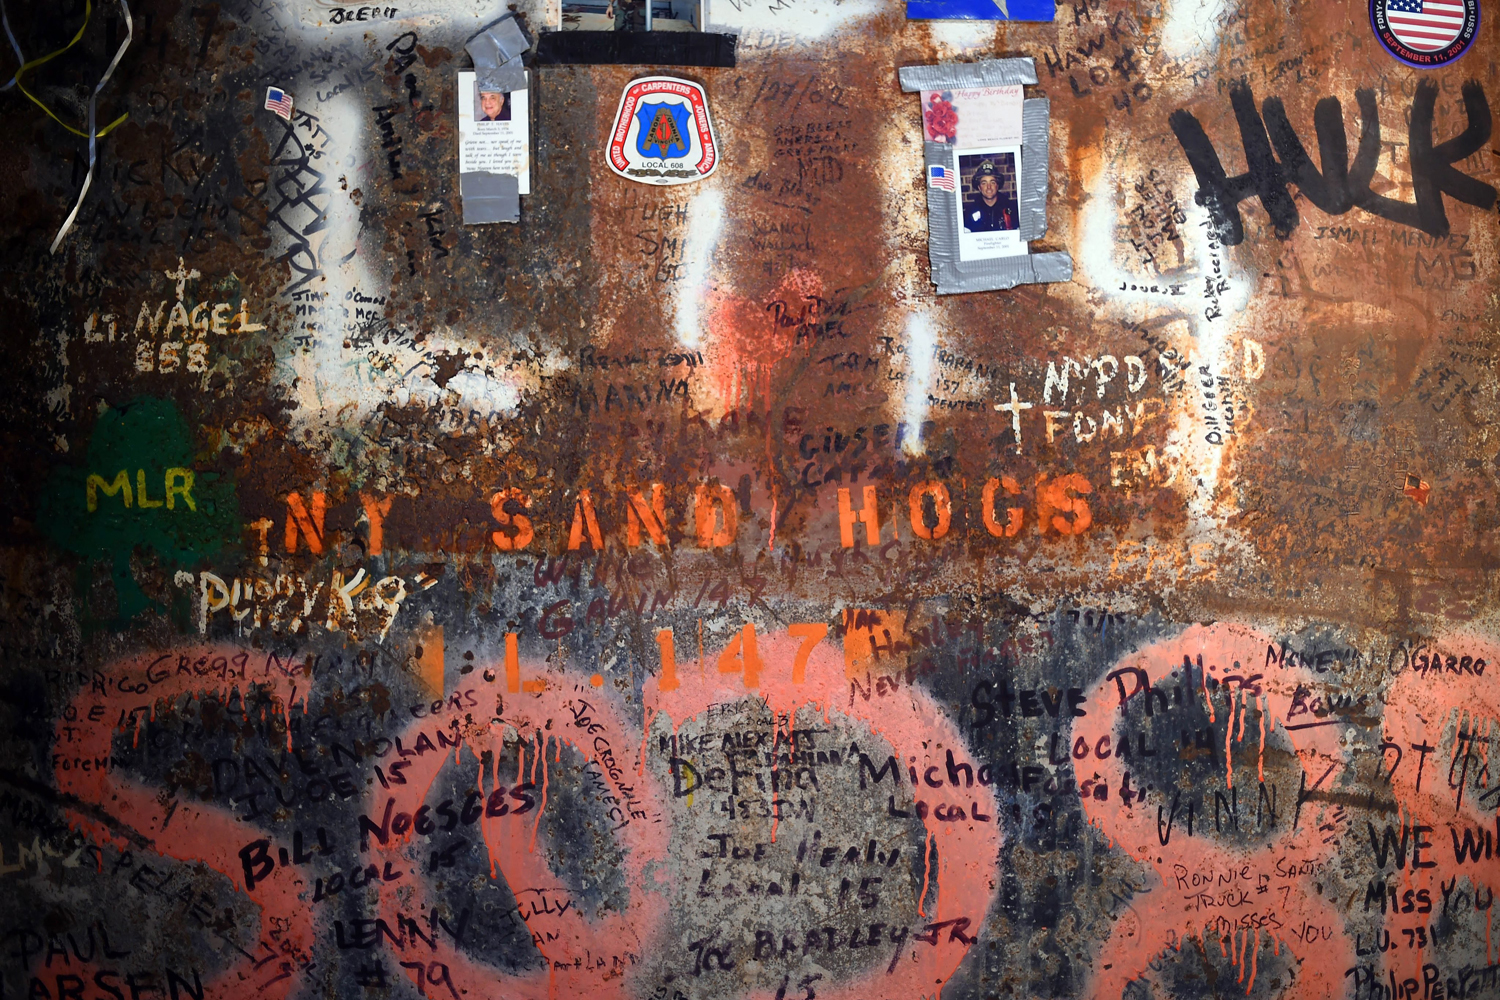 May 15, 2014. Close view of the last column, which was the final steel beam of original World Trade Center that was removed from Ground Zero, is on display at the National September 11 Memorial and Museum at Ground Zero in New York.